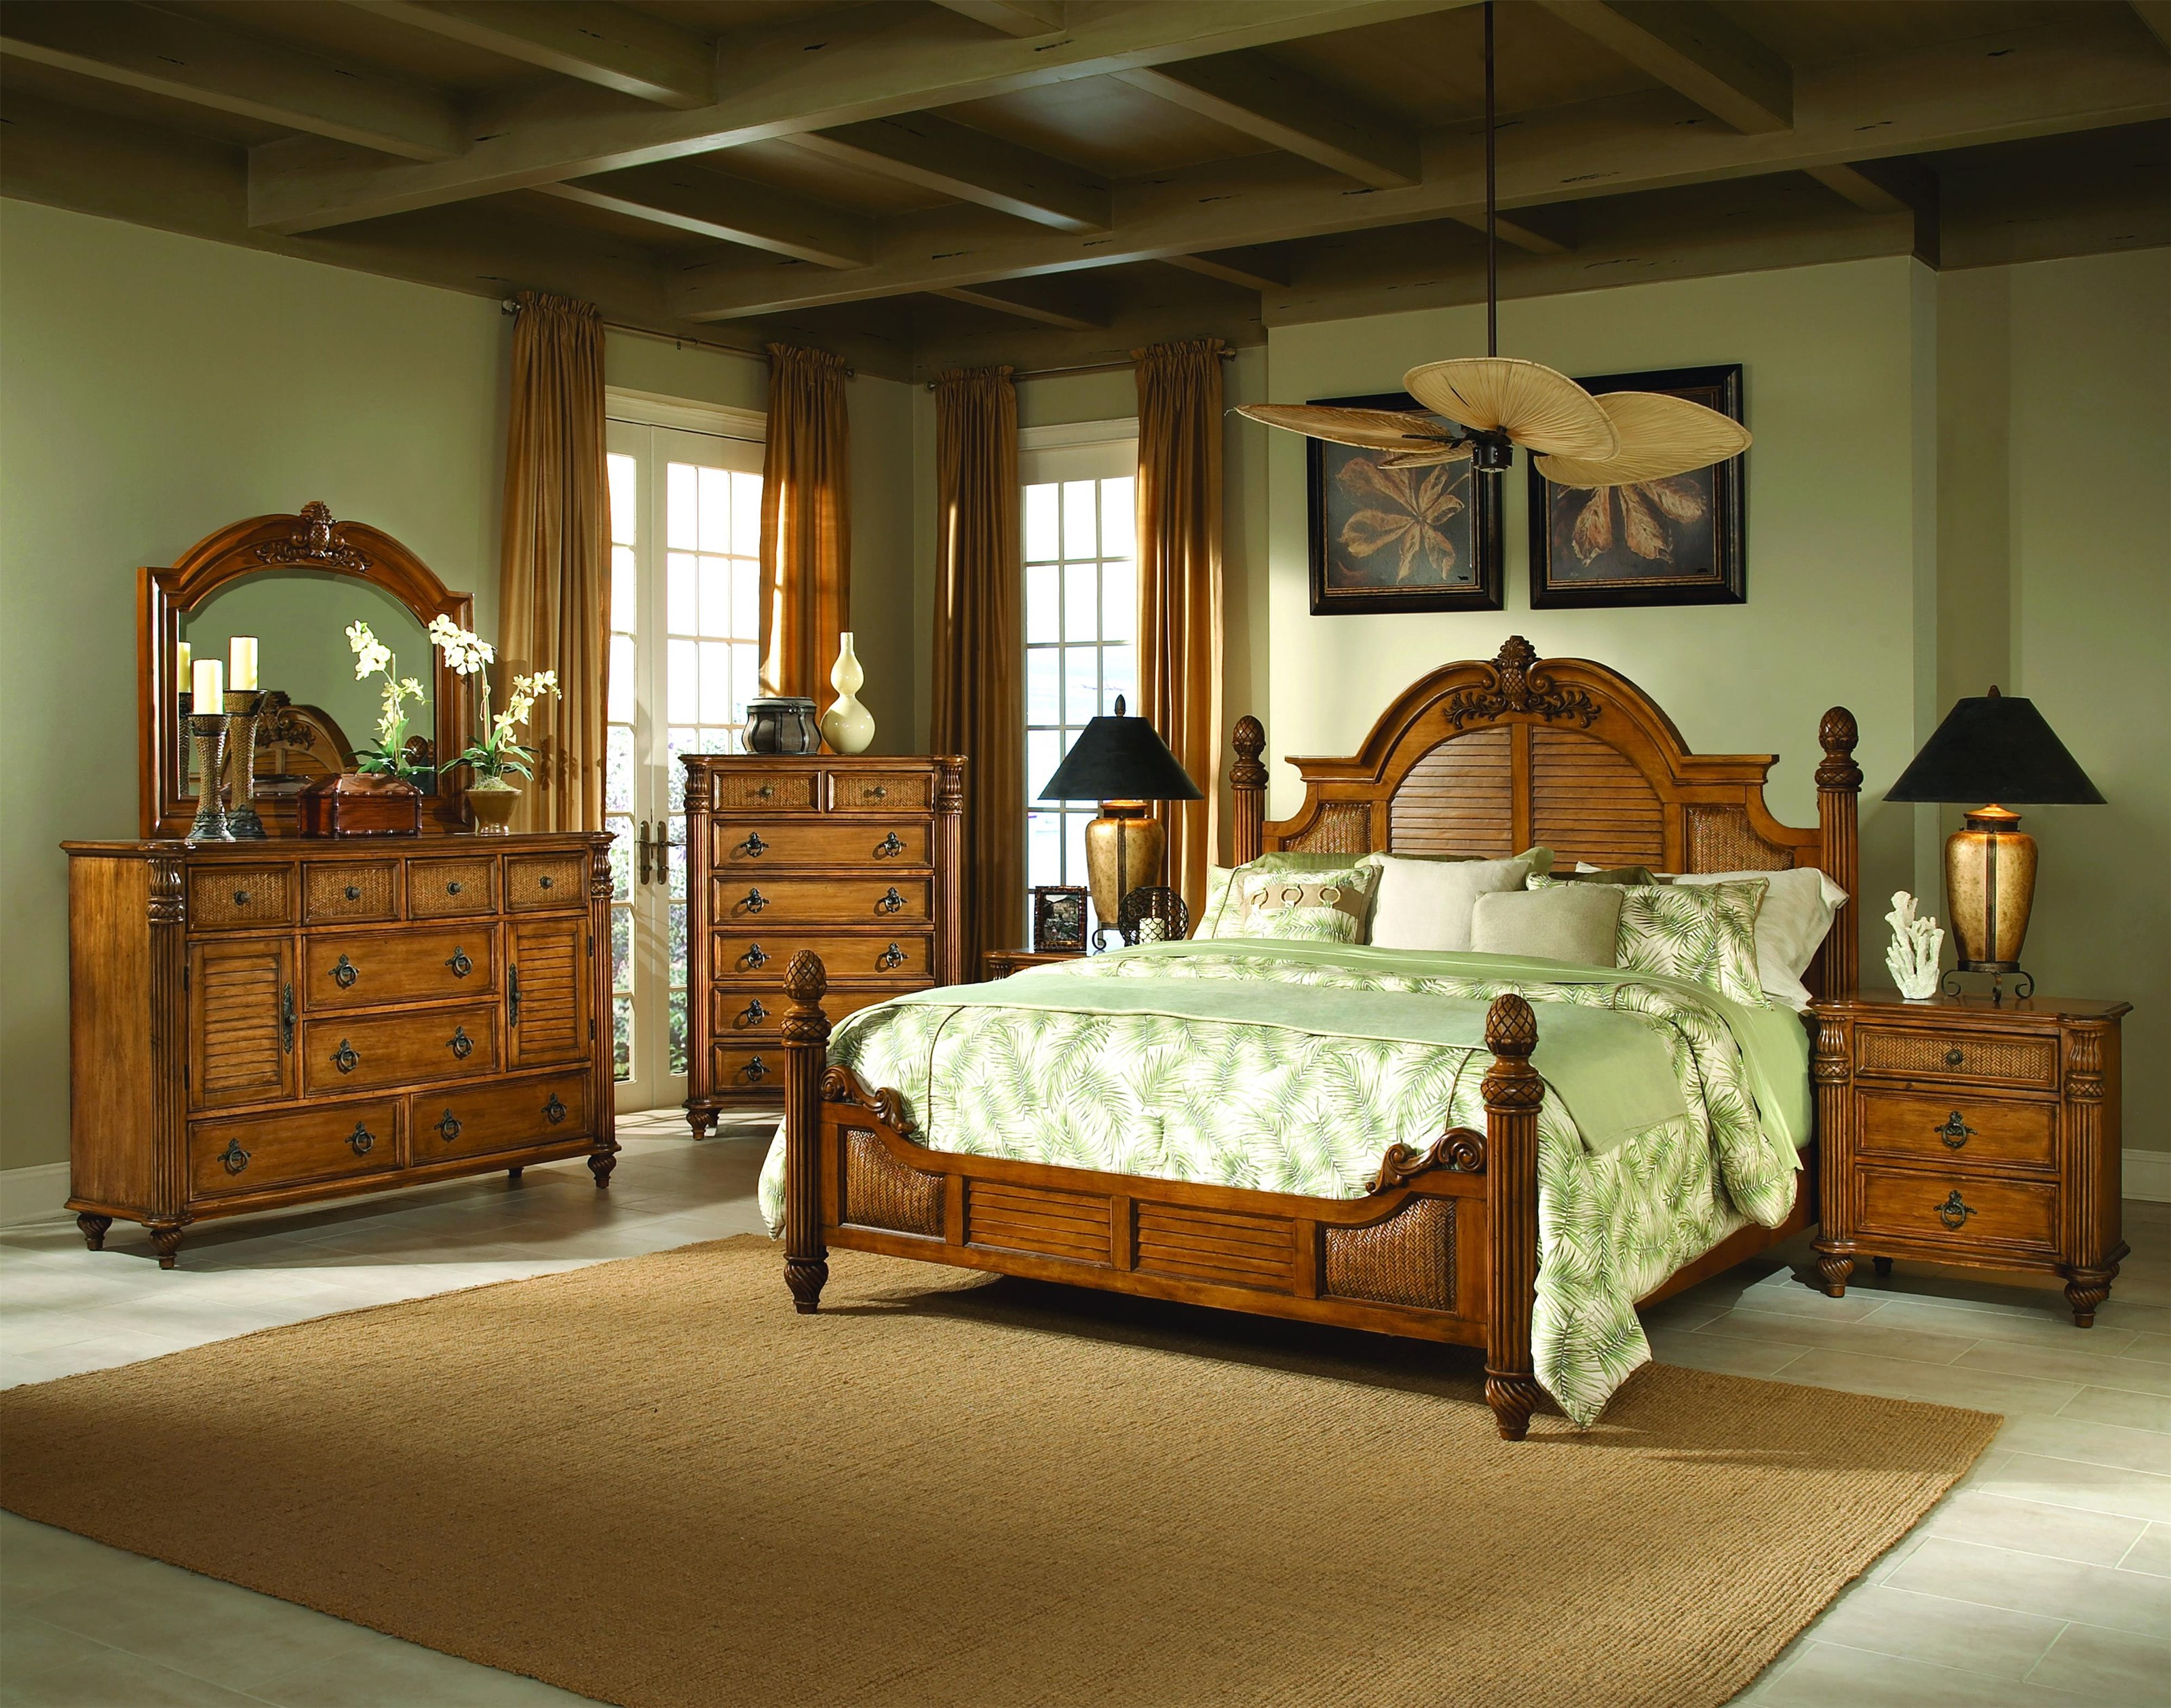 Key West Tropical Bed by Endura Furniture at Baer's Furniture